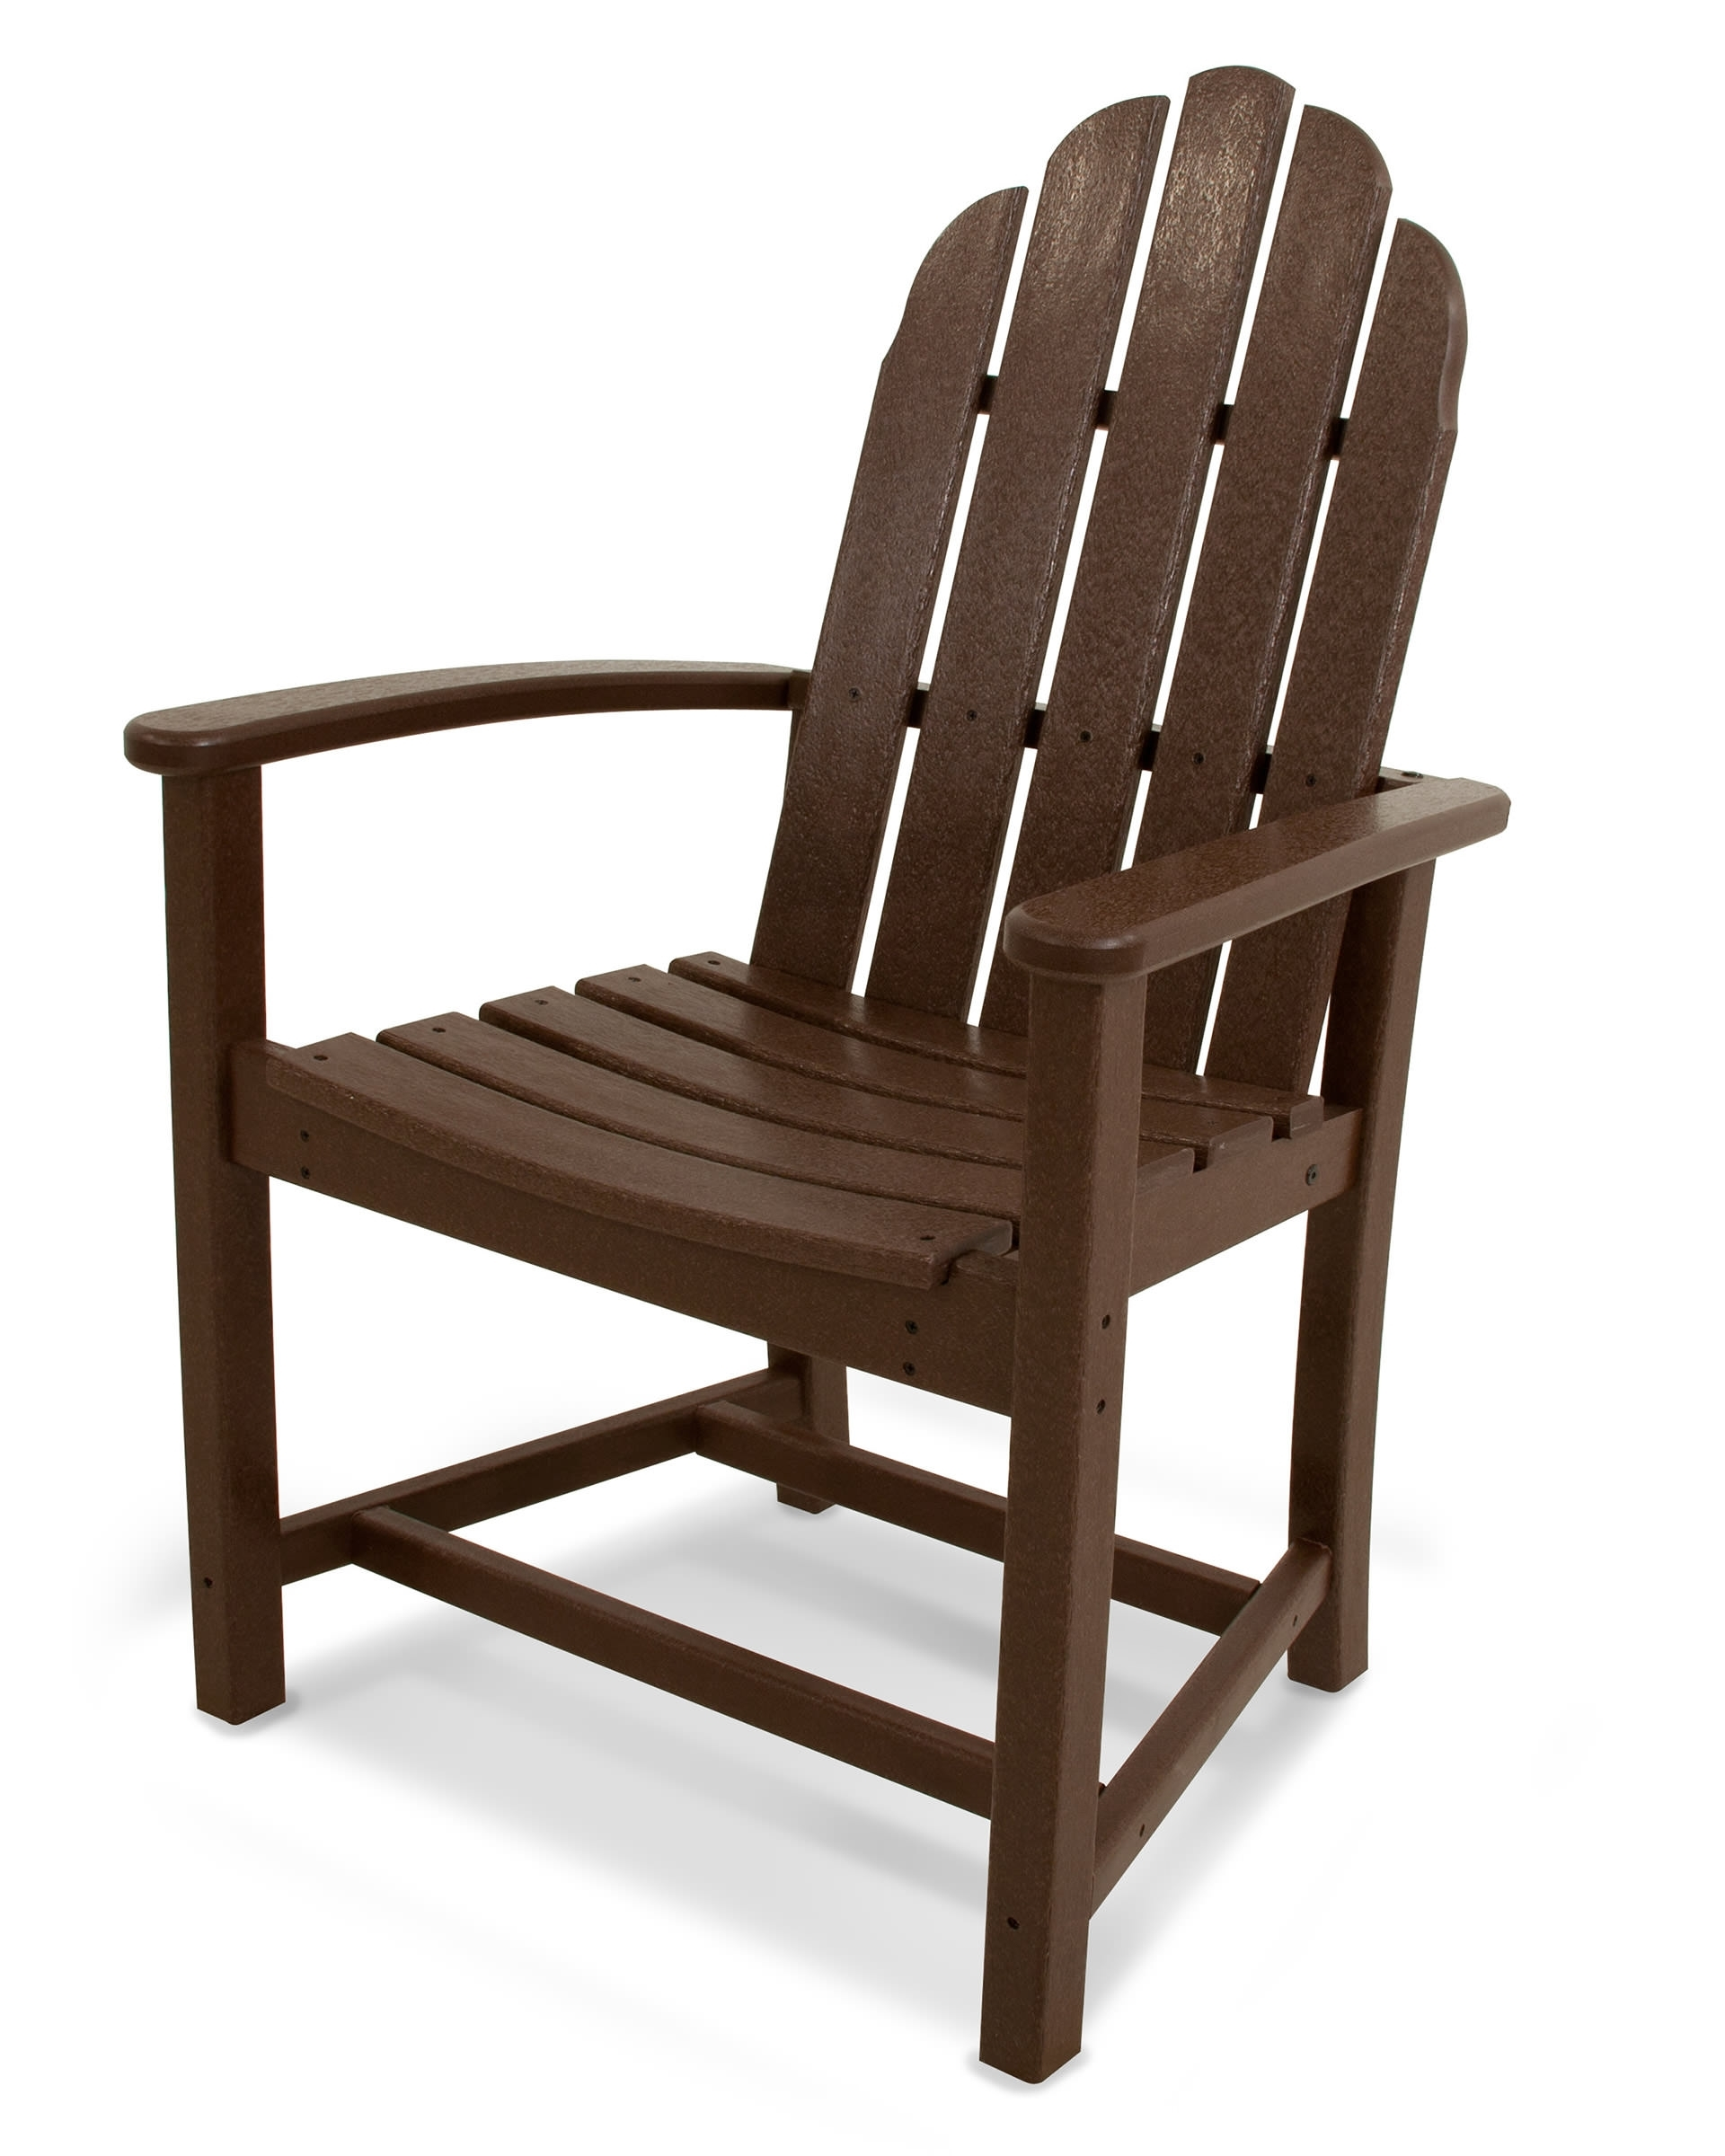 Plastic Patio Rocking Chairs Inside 2019 Polywood Classic Adirondack 7 Piece Dining Set – Classic Adirondack (View 10 of 20)